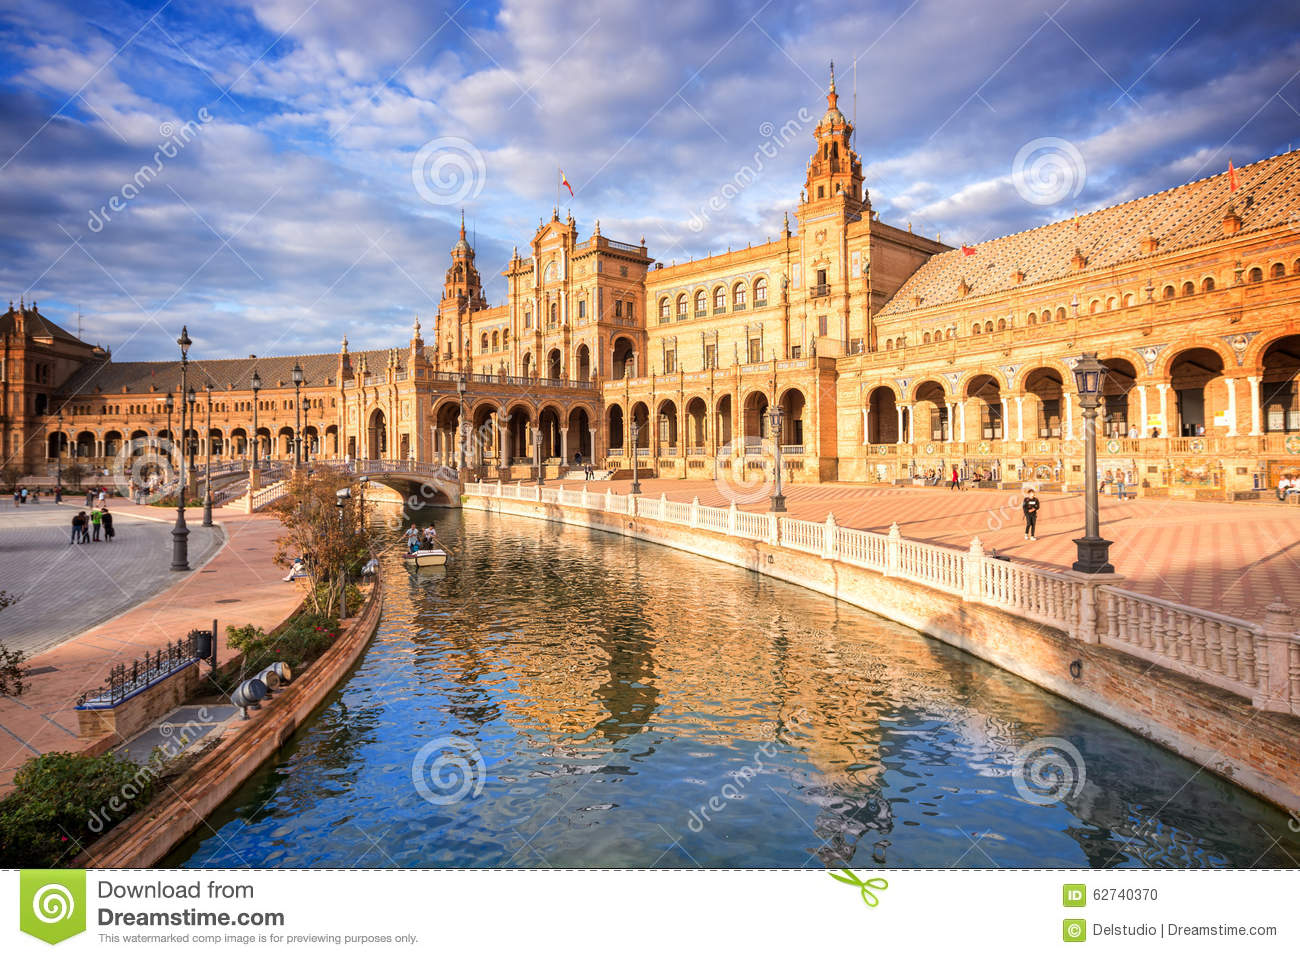 Download Plaza De Espana (Spain Square) In Seville, Spain Stock Photo - Image of andalucia, famous: 62740370